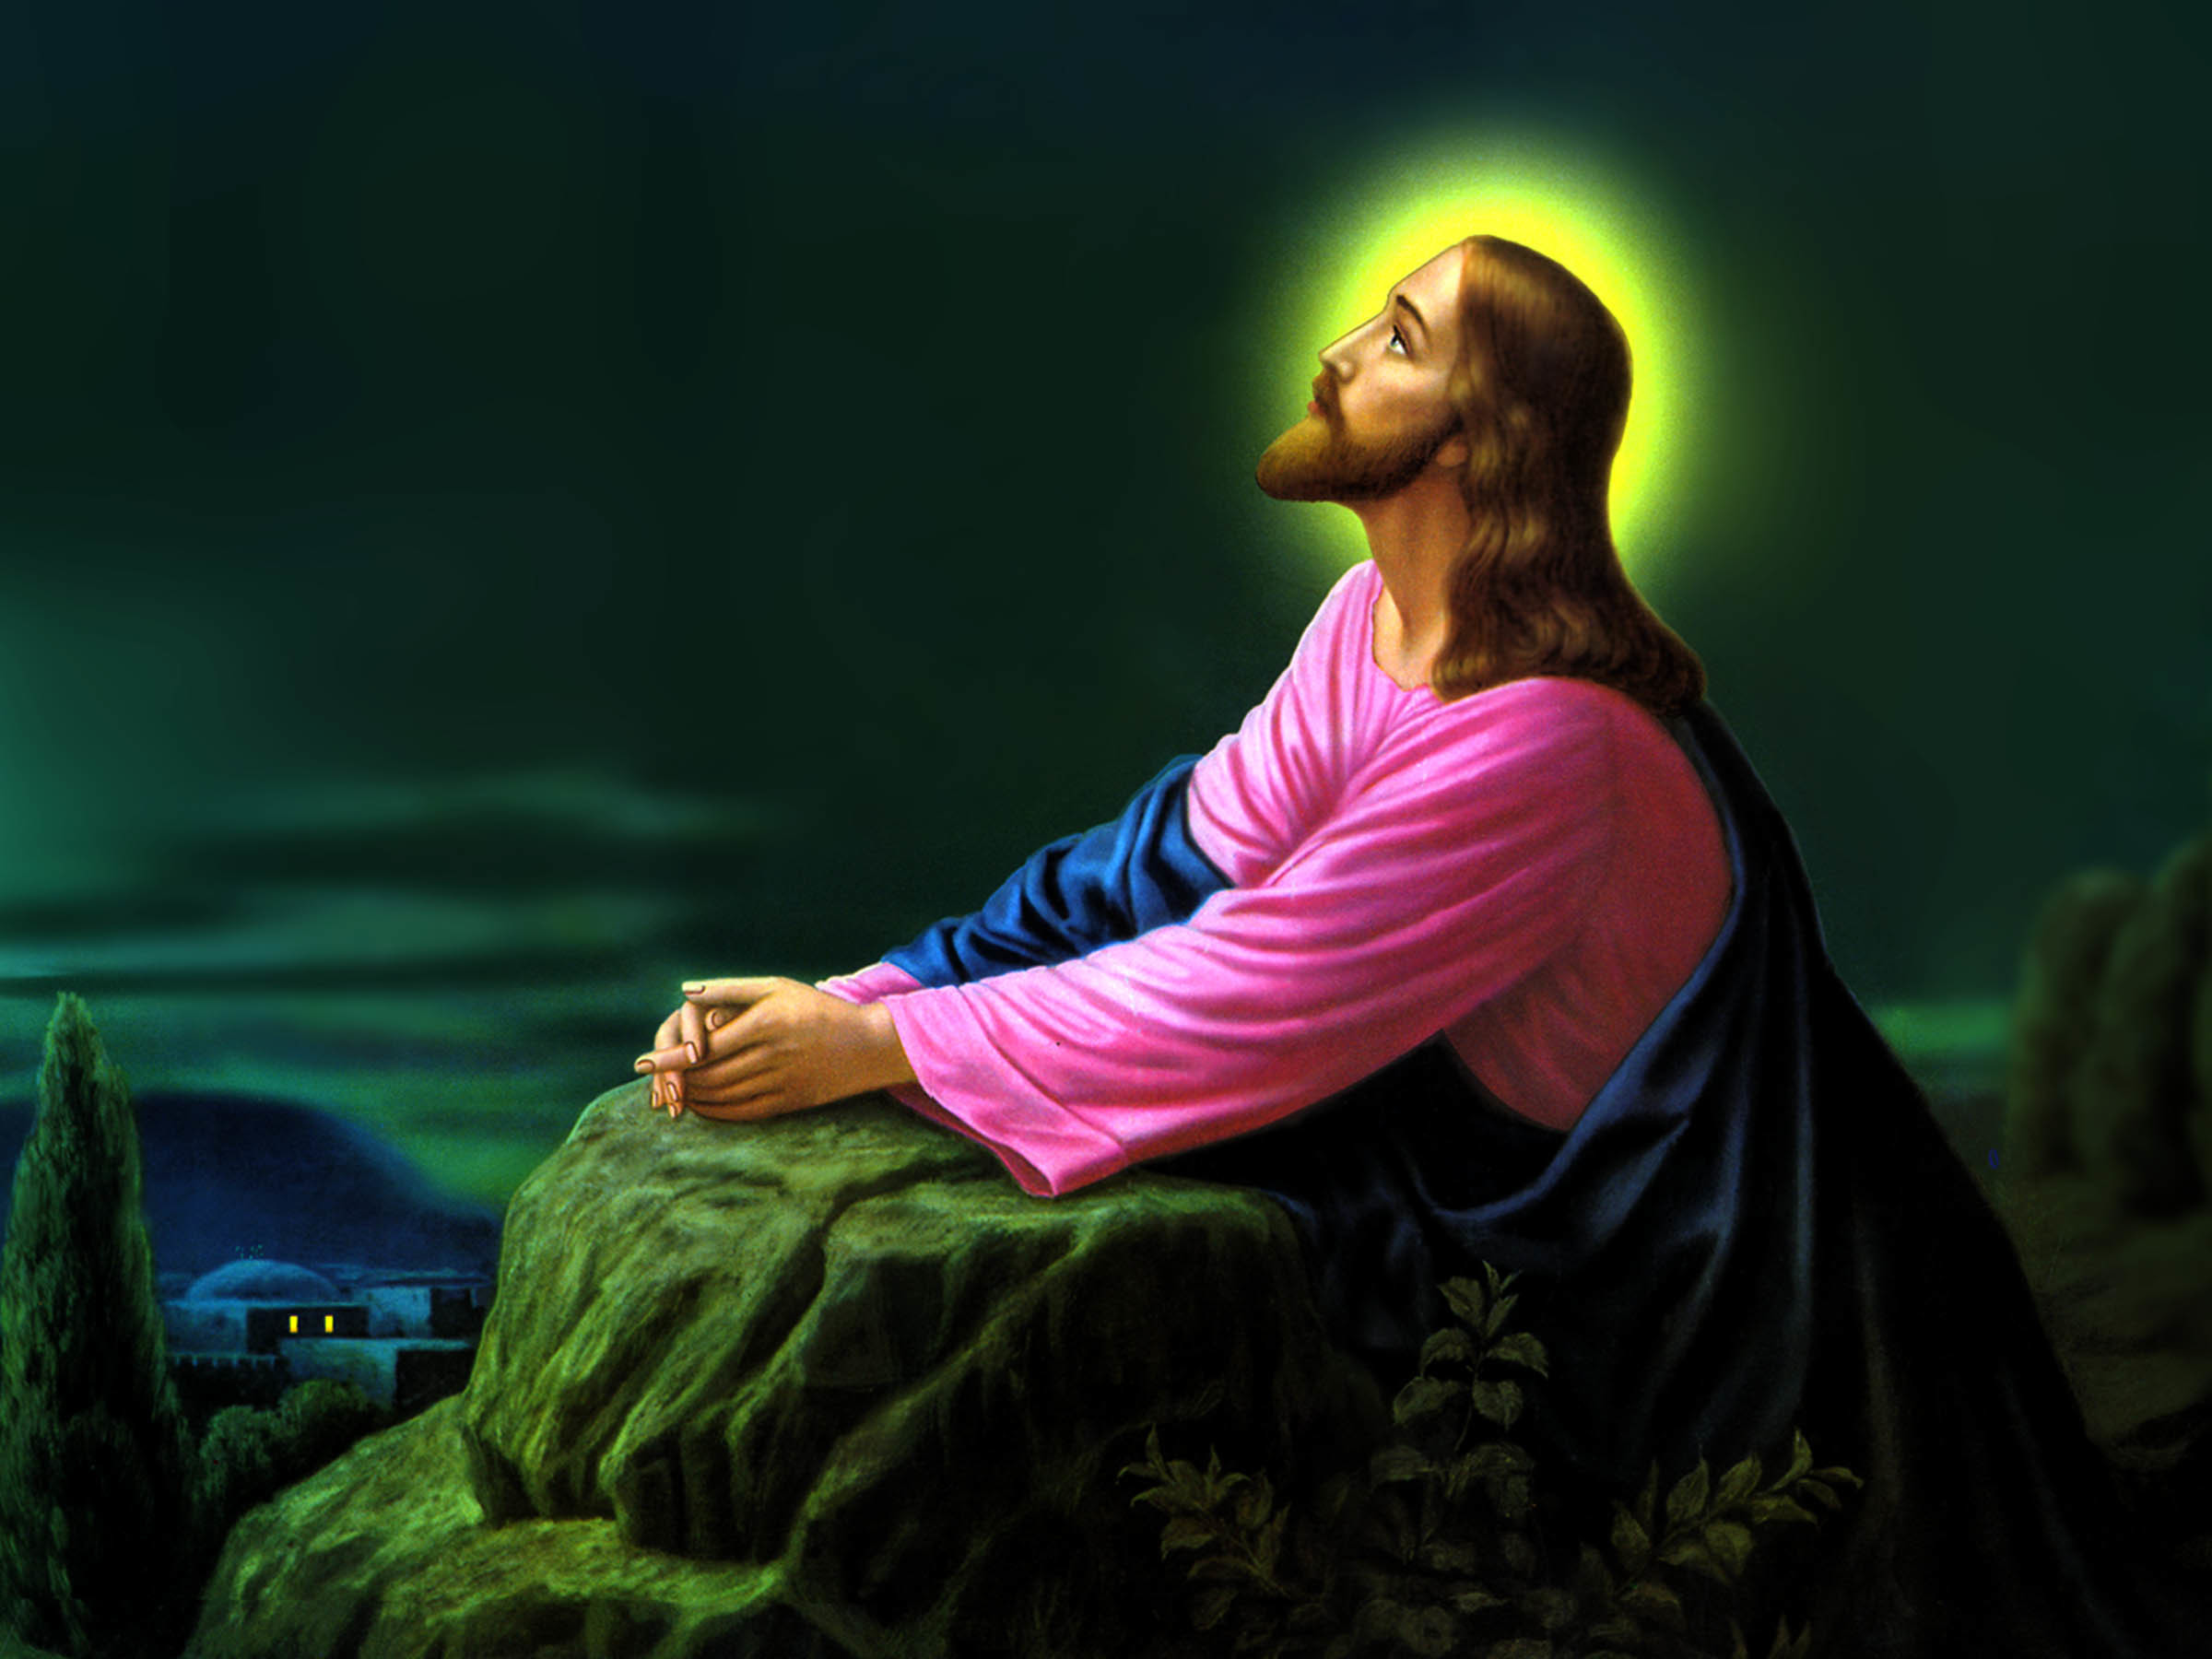 Res: 2400x1800, Jesus Christ Praying Wallpapers 03